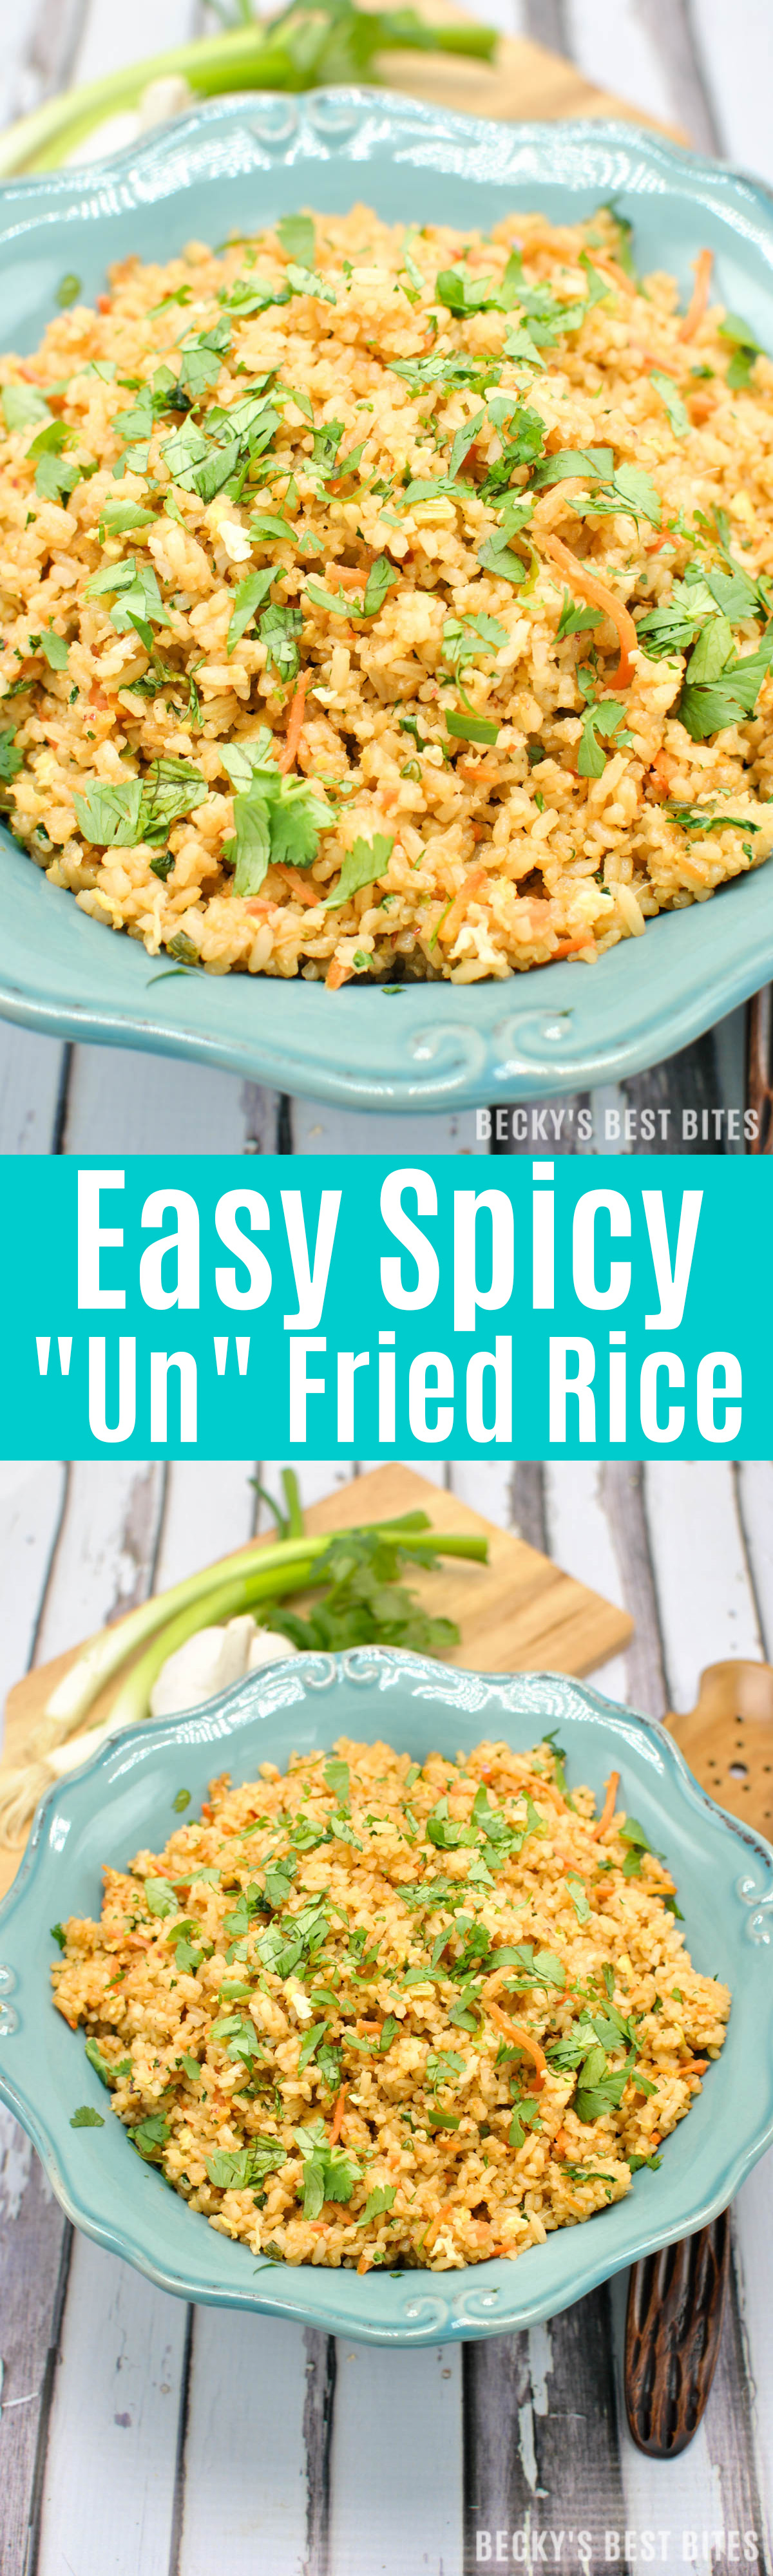 Easy Spicy Unfried Rice is healthy recipe makeover for the classic take-out favorite with all the classic flavors. Brown rice, less oil, more vegetables make this side dish more nutritious! | beckysbestbites.com